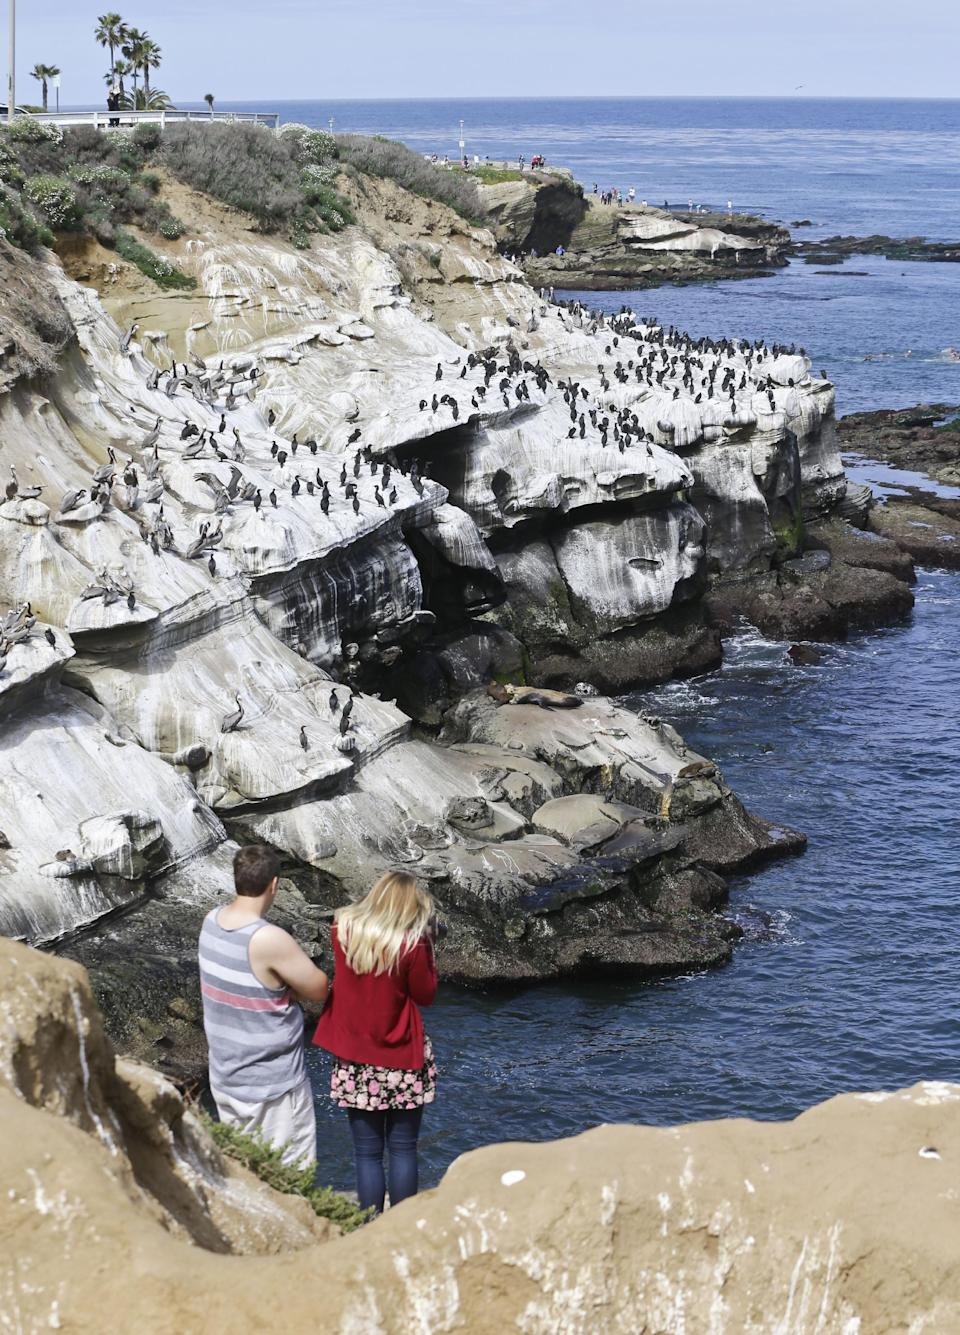 Tourist take photo of the massive bird gathering on the cliffs in the La Jolla section of San Diego, Tuesday, April 2, 2013.  The birds have turned the cliffs white with their droppings and caused a stench in the area that draws tourist to restaurants and hotels.  (APPhoto/Lenny Ignelzi)